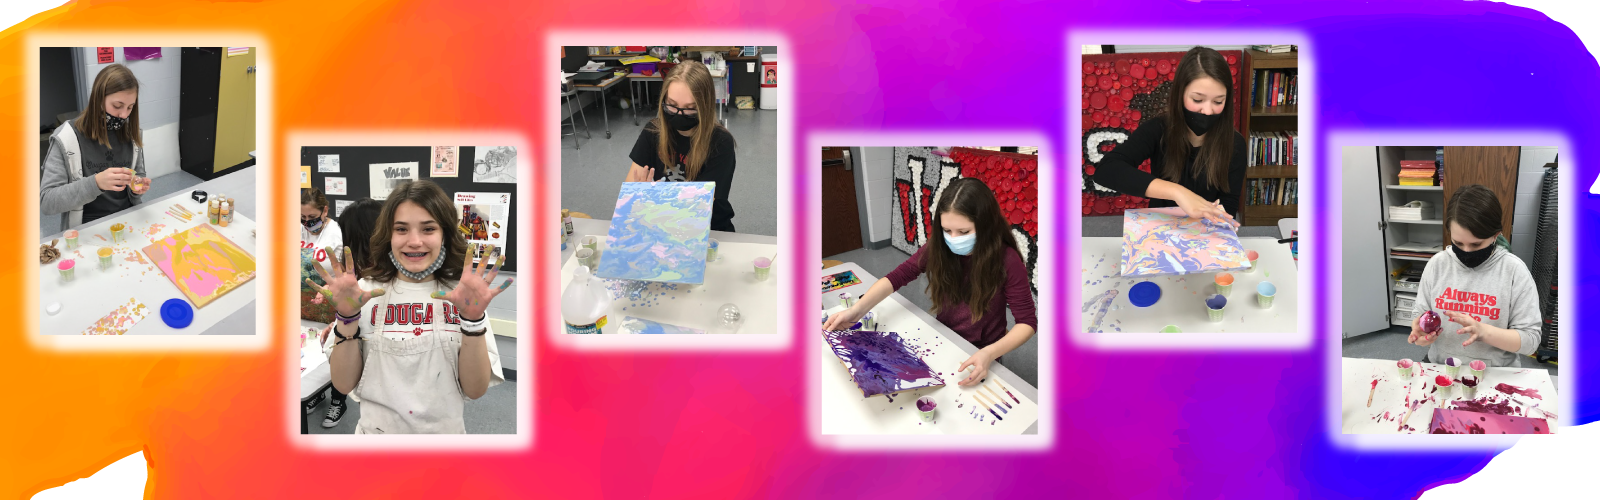 Middle school art students working with paint